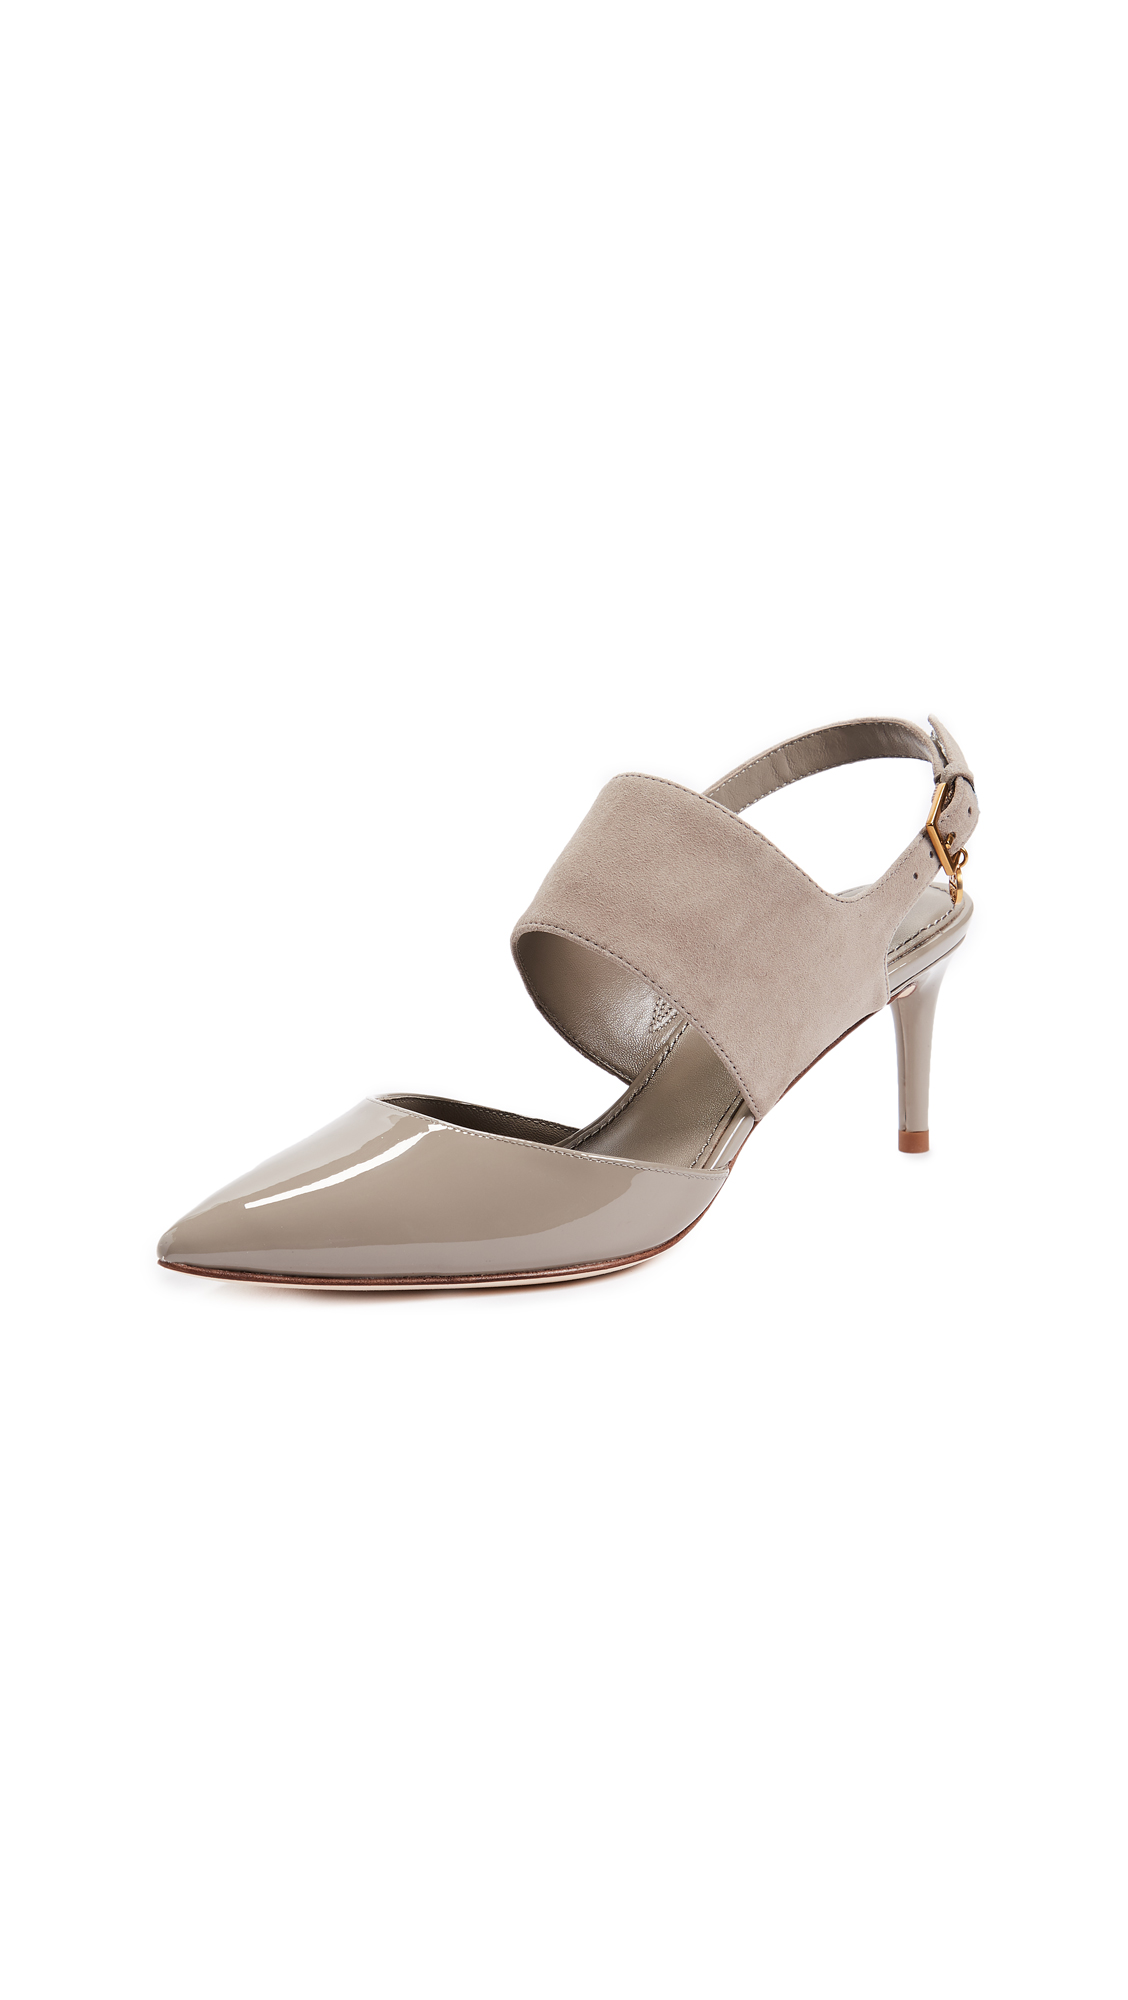 Tory Burch Ashton 65mm Pumps - Dust Storm/Dust Storm